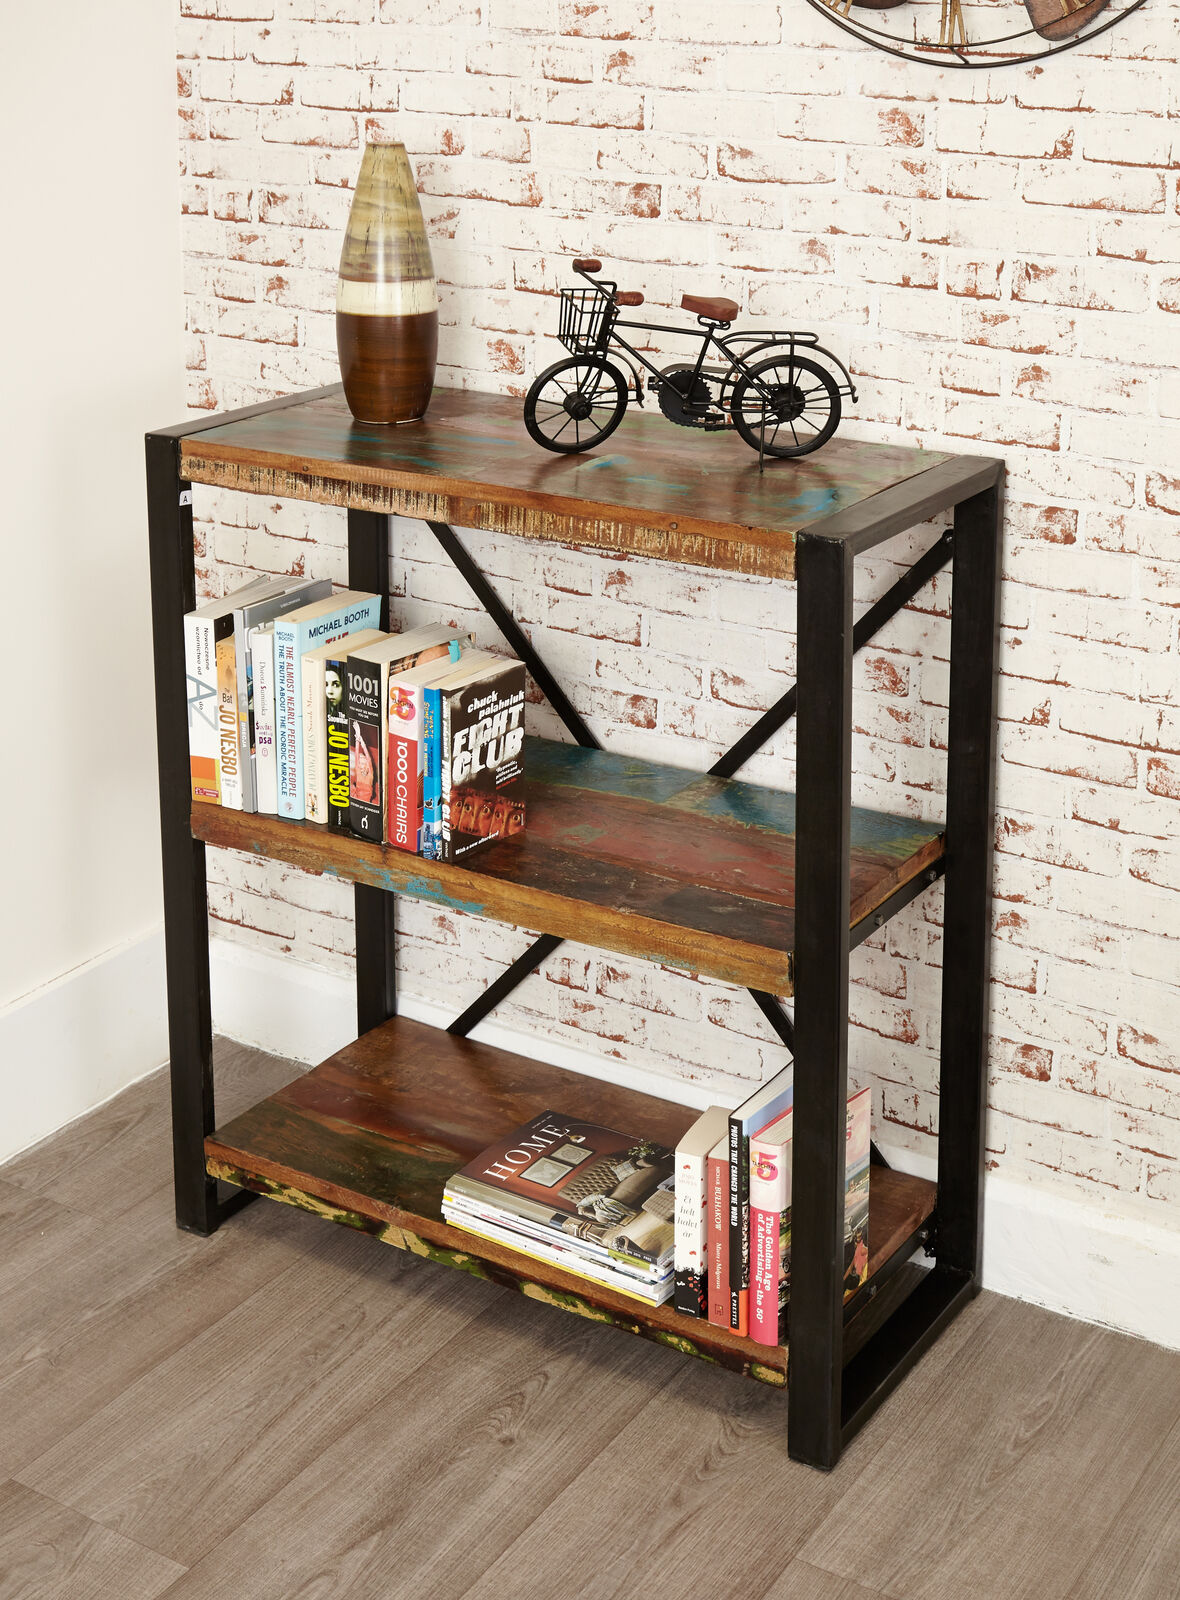 Details About Urban Chic Reclaimed Wood 3 Shelf Bookcase Low Display Unit Steel Frame